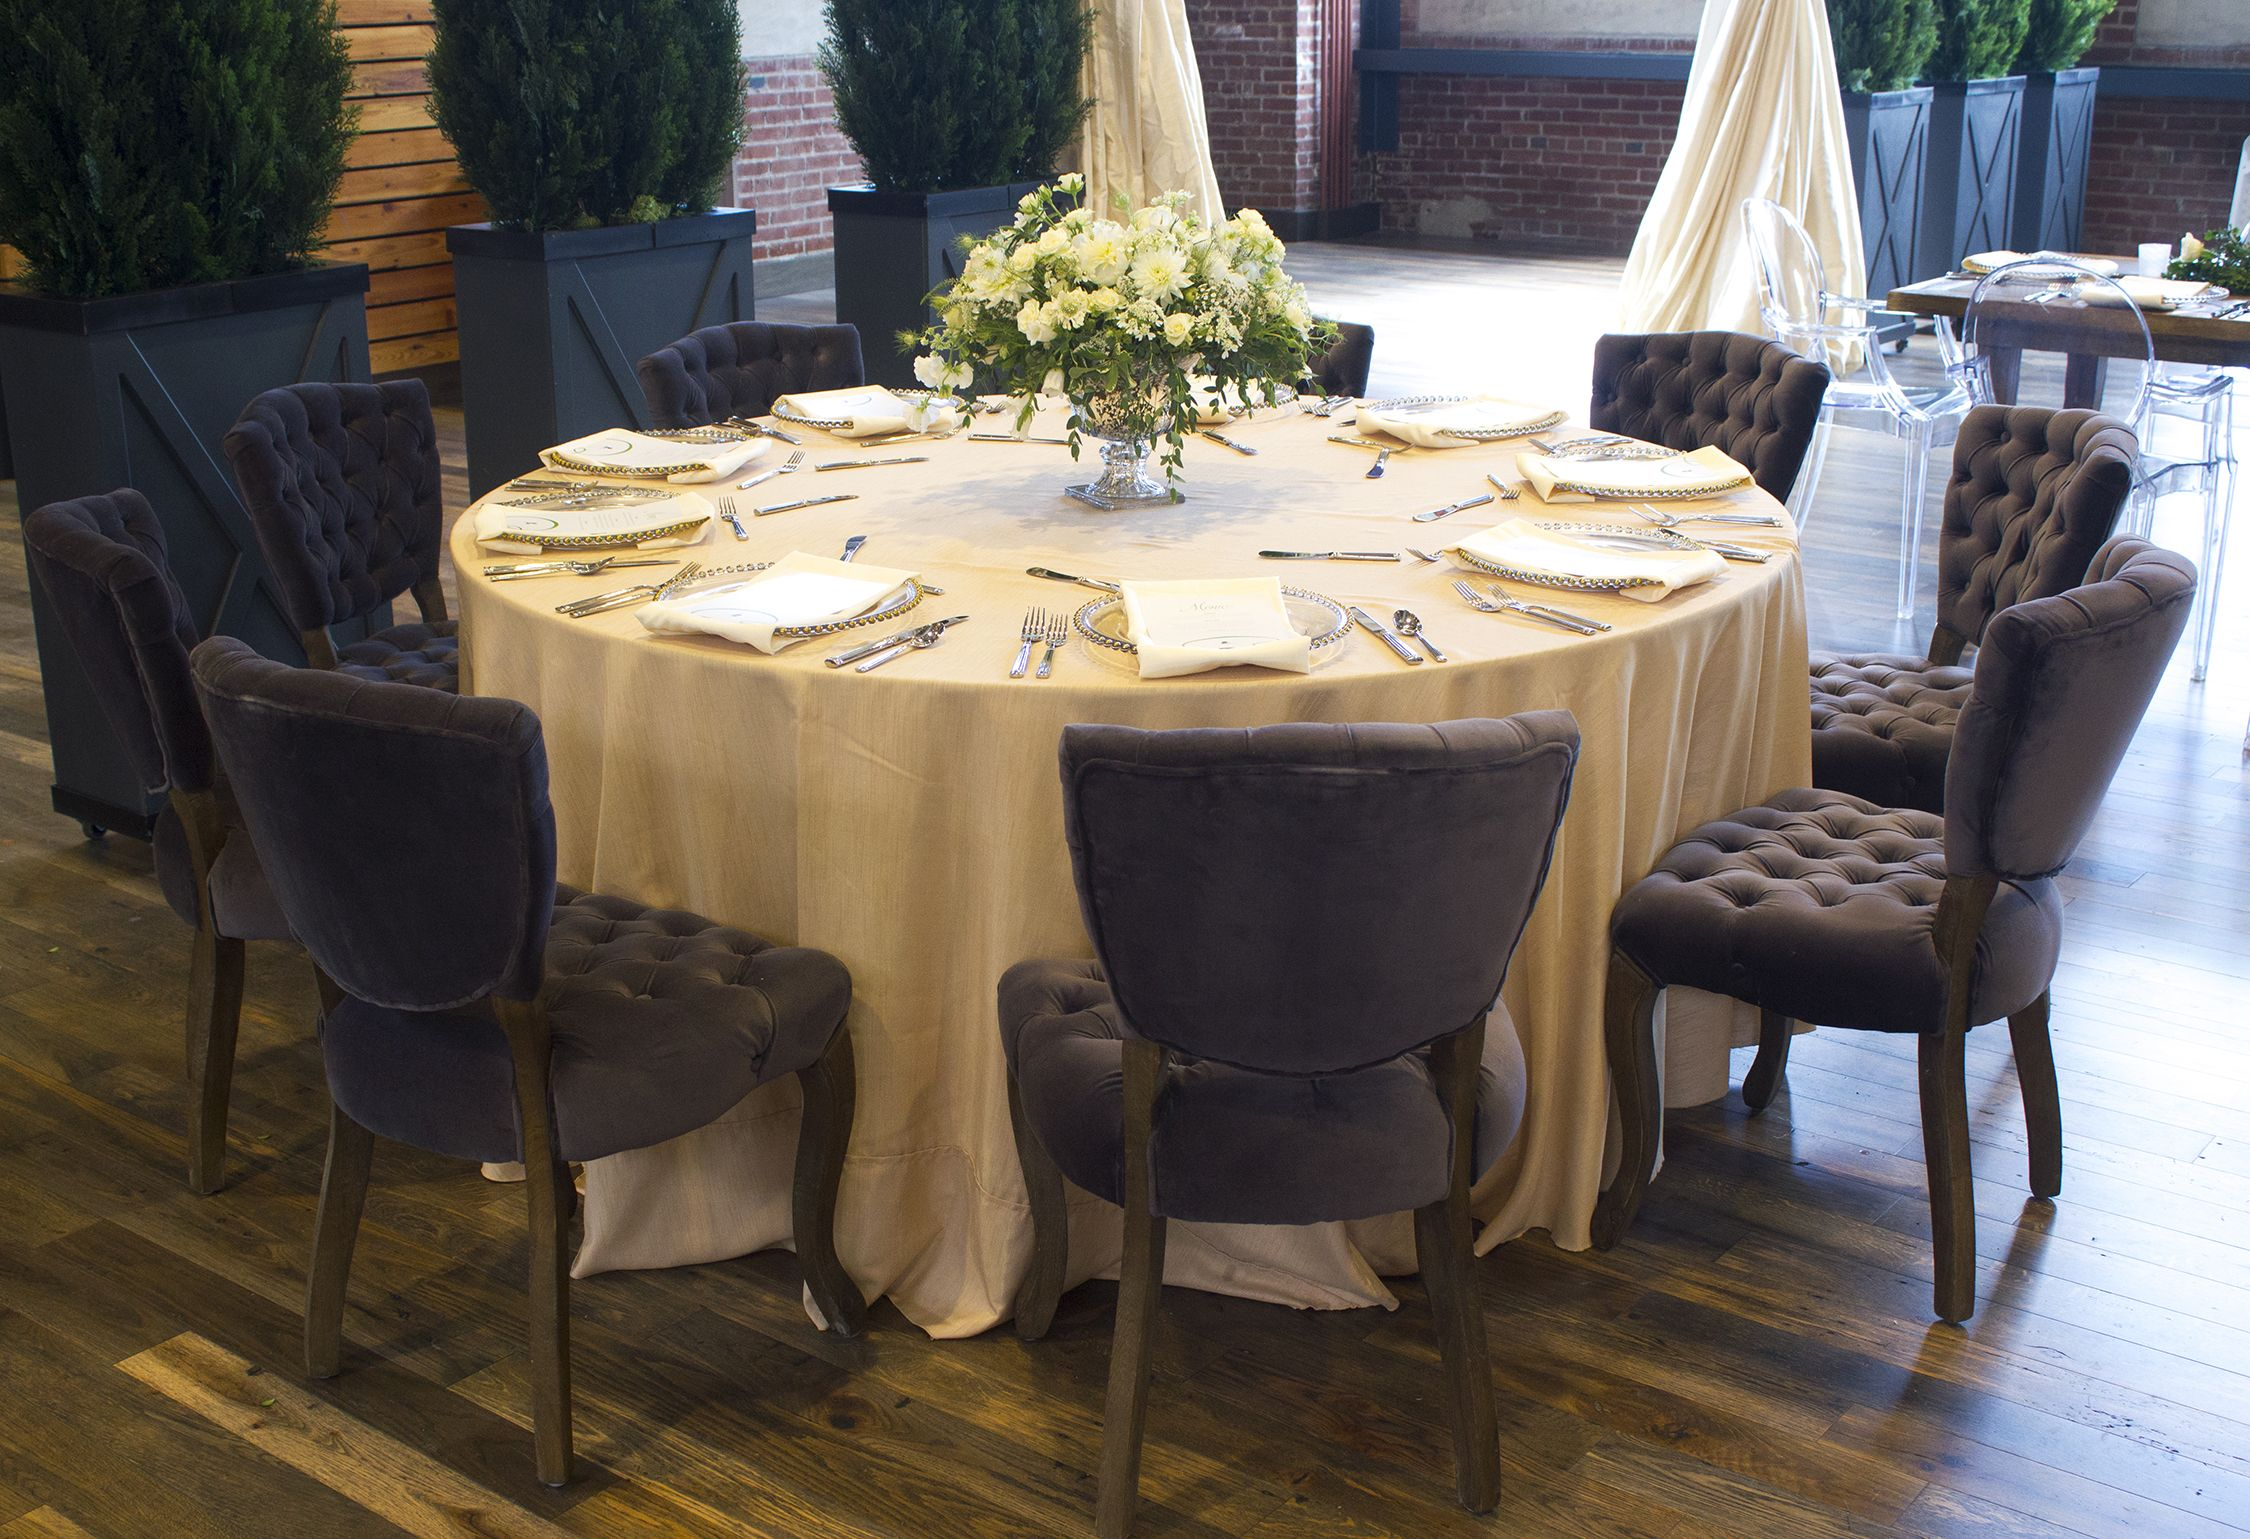 Centerpiece, chairs, linens and other decor provided by